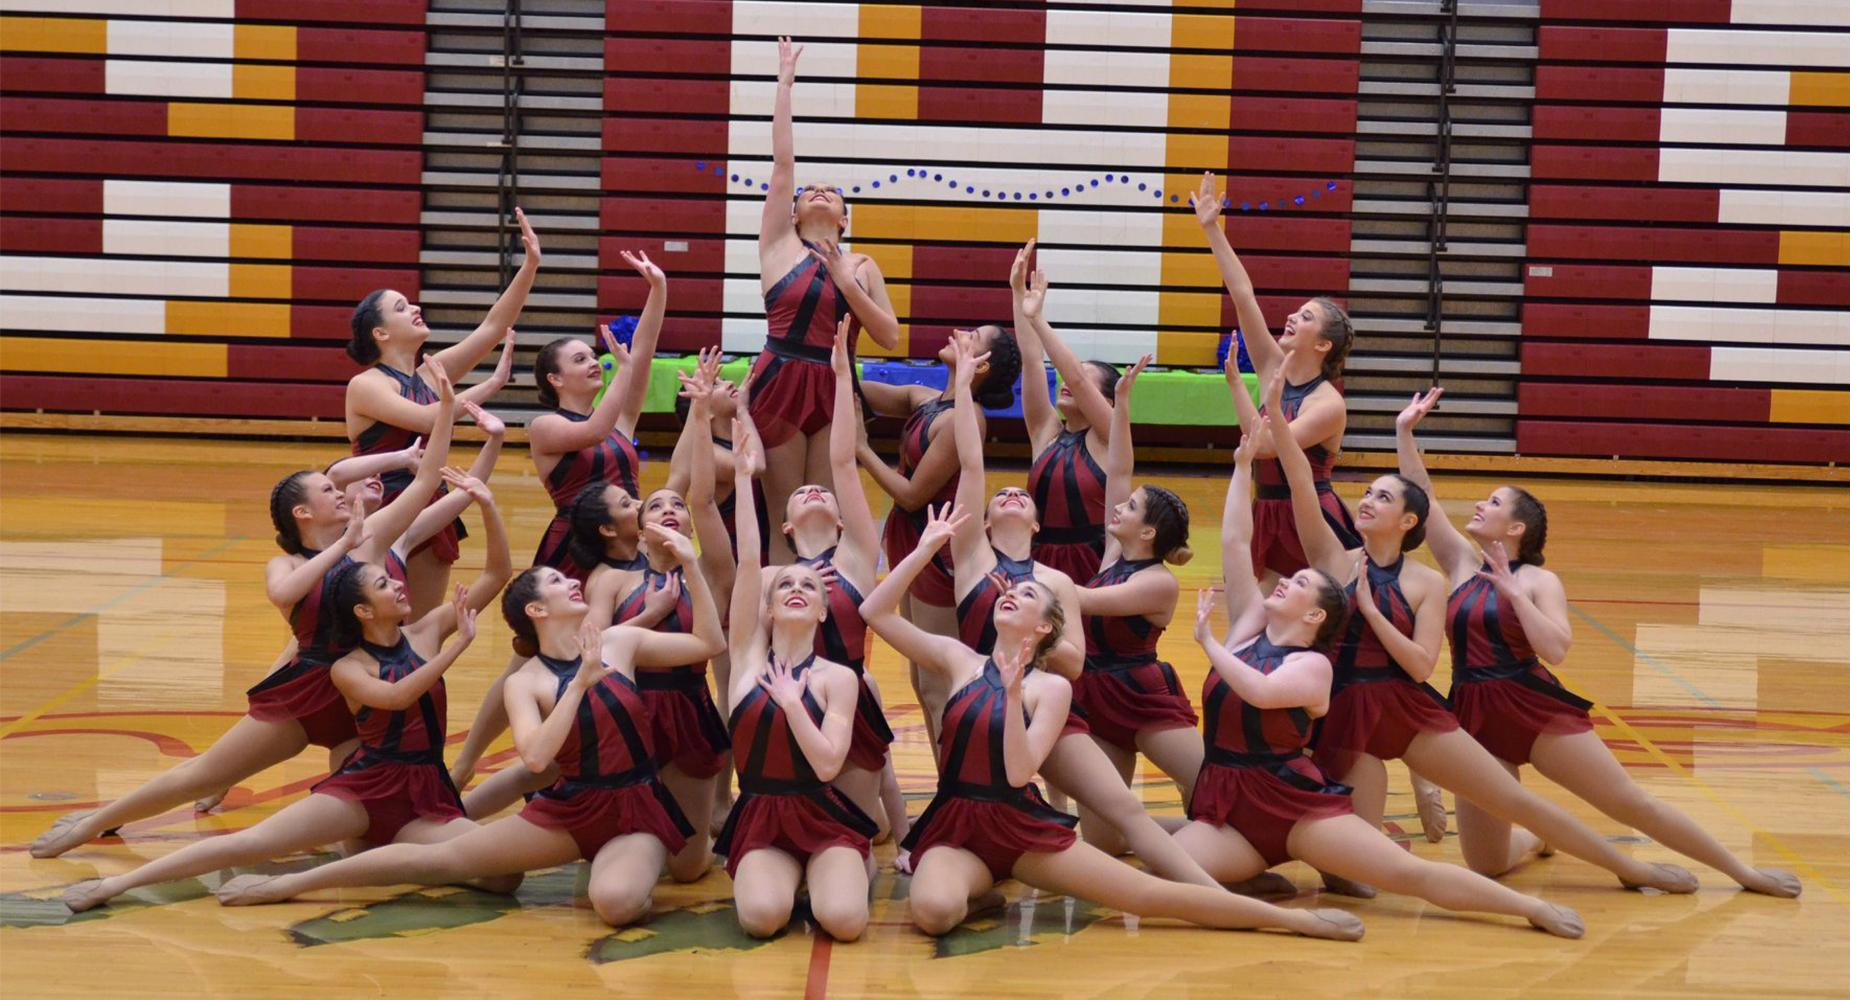 The Columbia High Dance Team strikes a pose at the end of a routine.